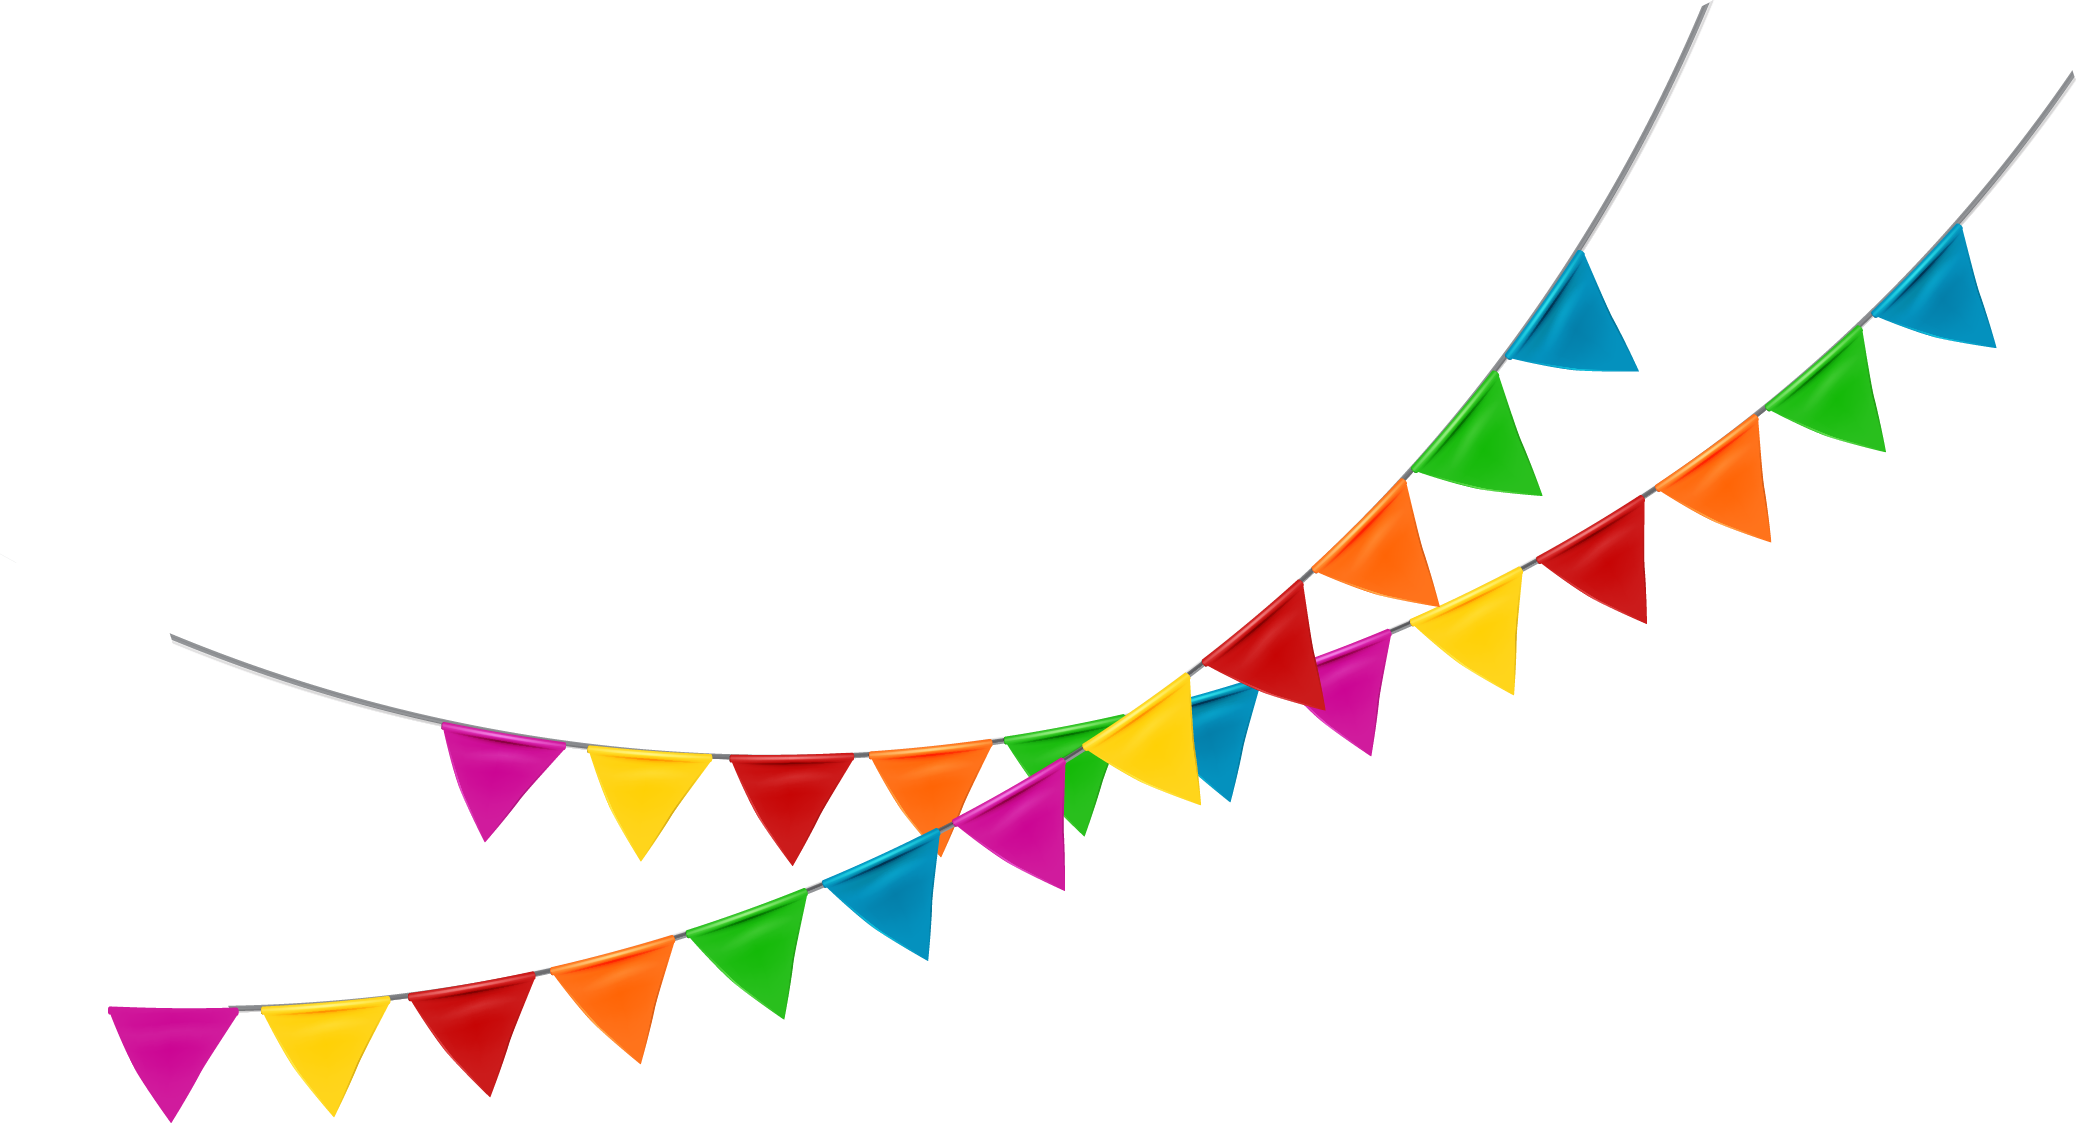 Flag banner png. Pennon bunting color cartoon